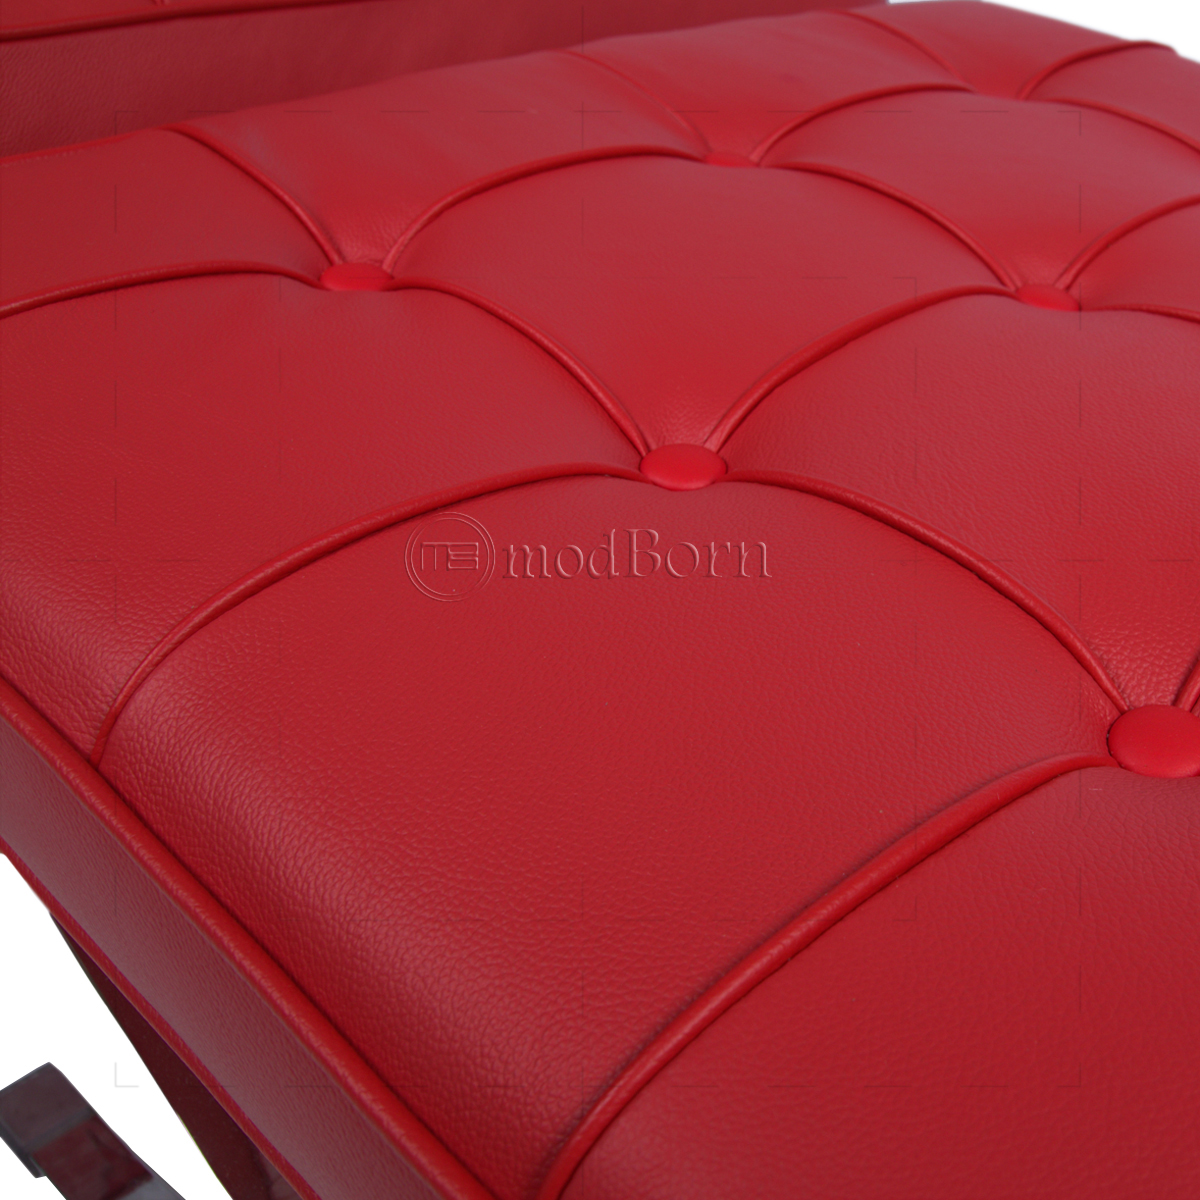 Barcelona Chair Style Mies Ven Der Rohe Barcelona Style Chair Red Leather